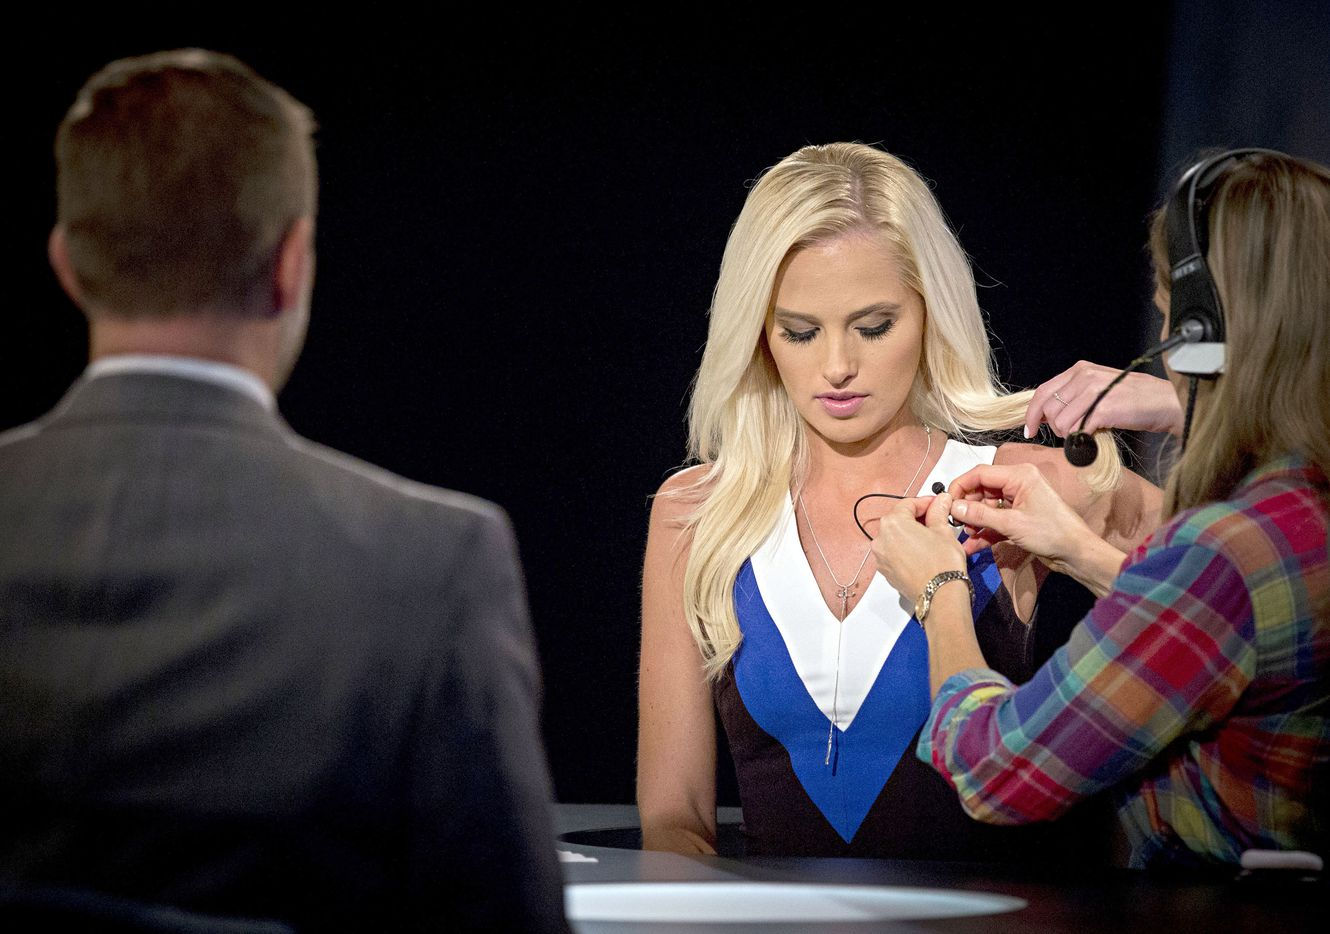 Greenville City Councilman Brent Money (left) looks on as Tomi Lahren is prepped for a taping of her show.